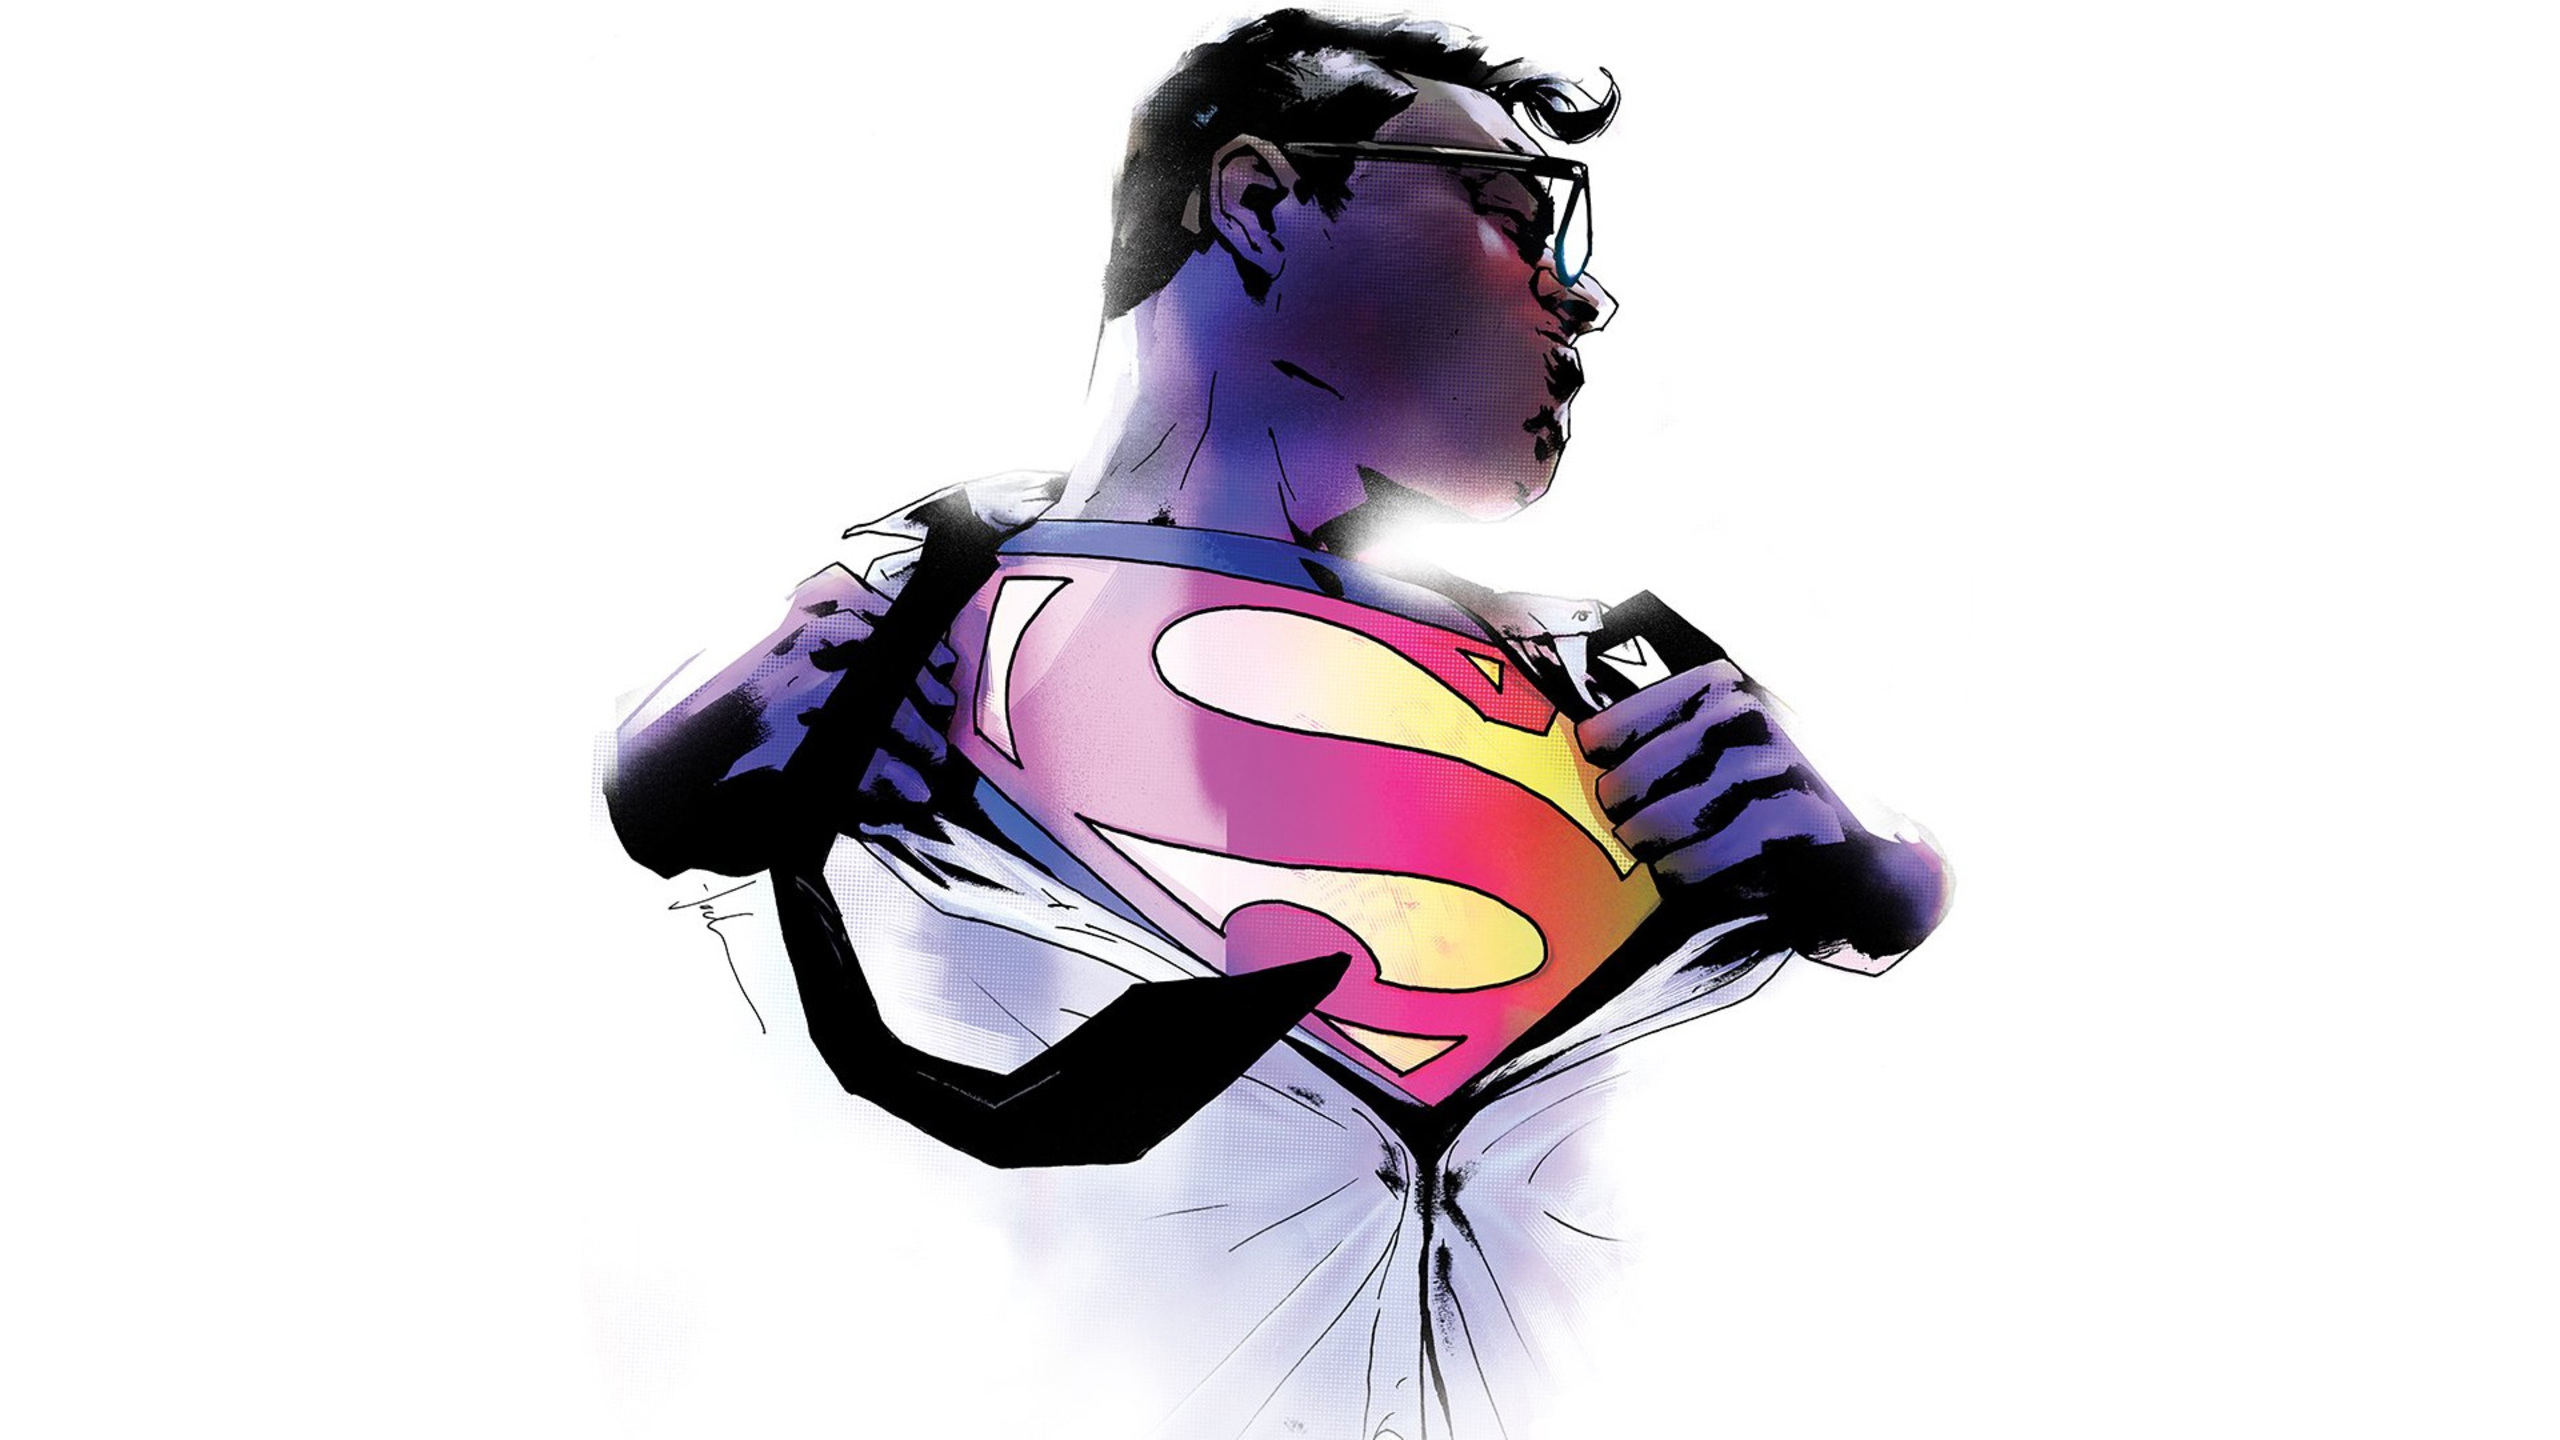 superman-action-comics-artwork-ab.jpg